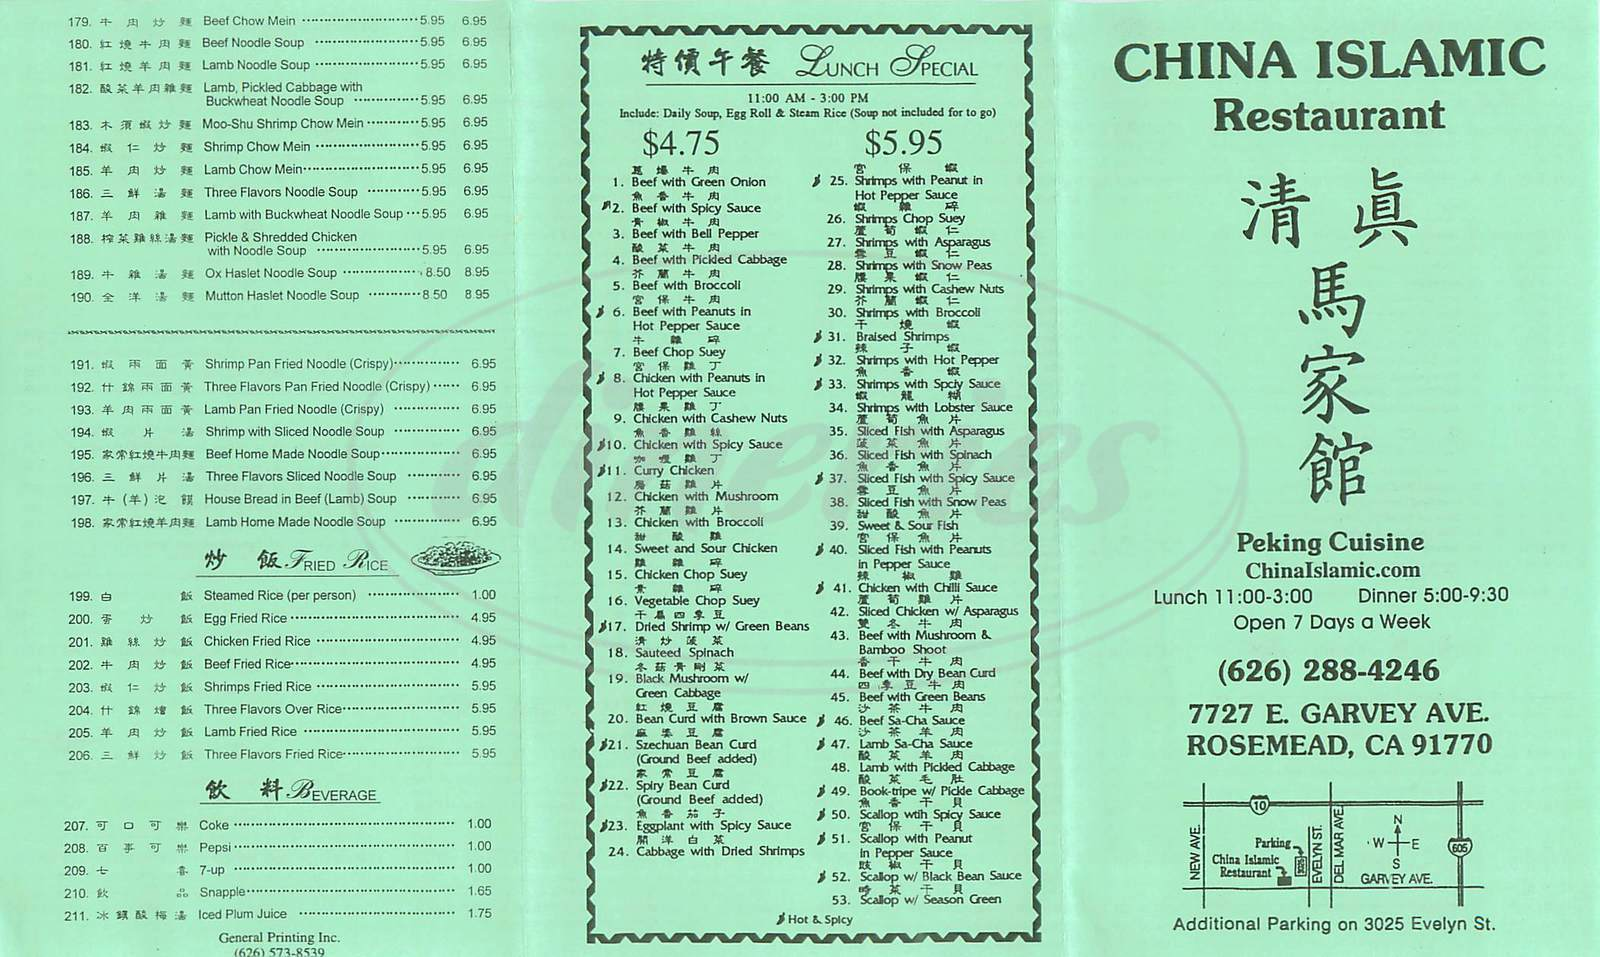 menu for China Islamic